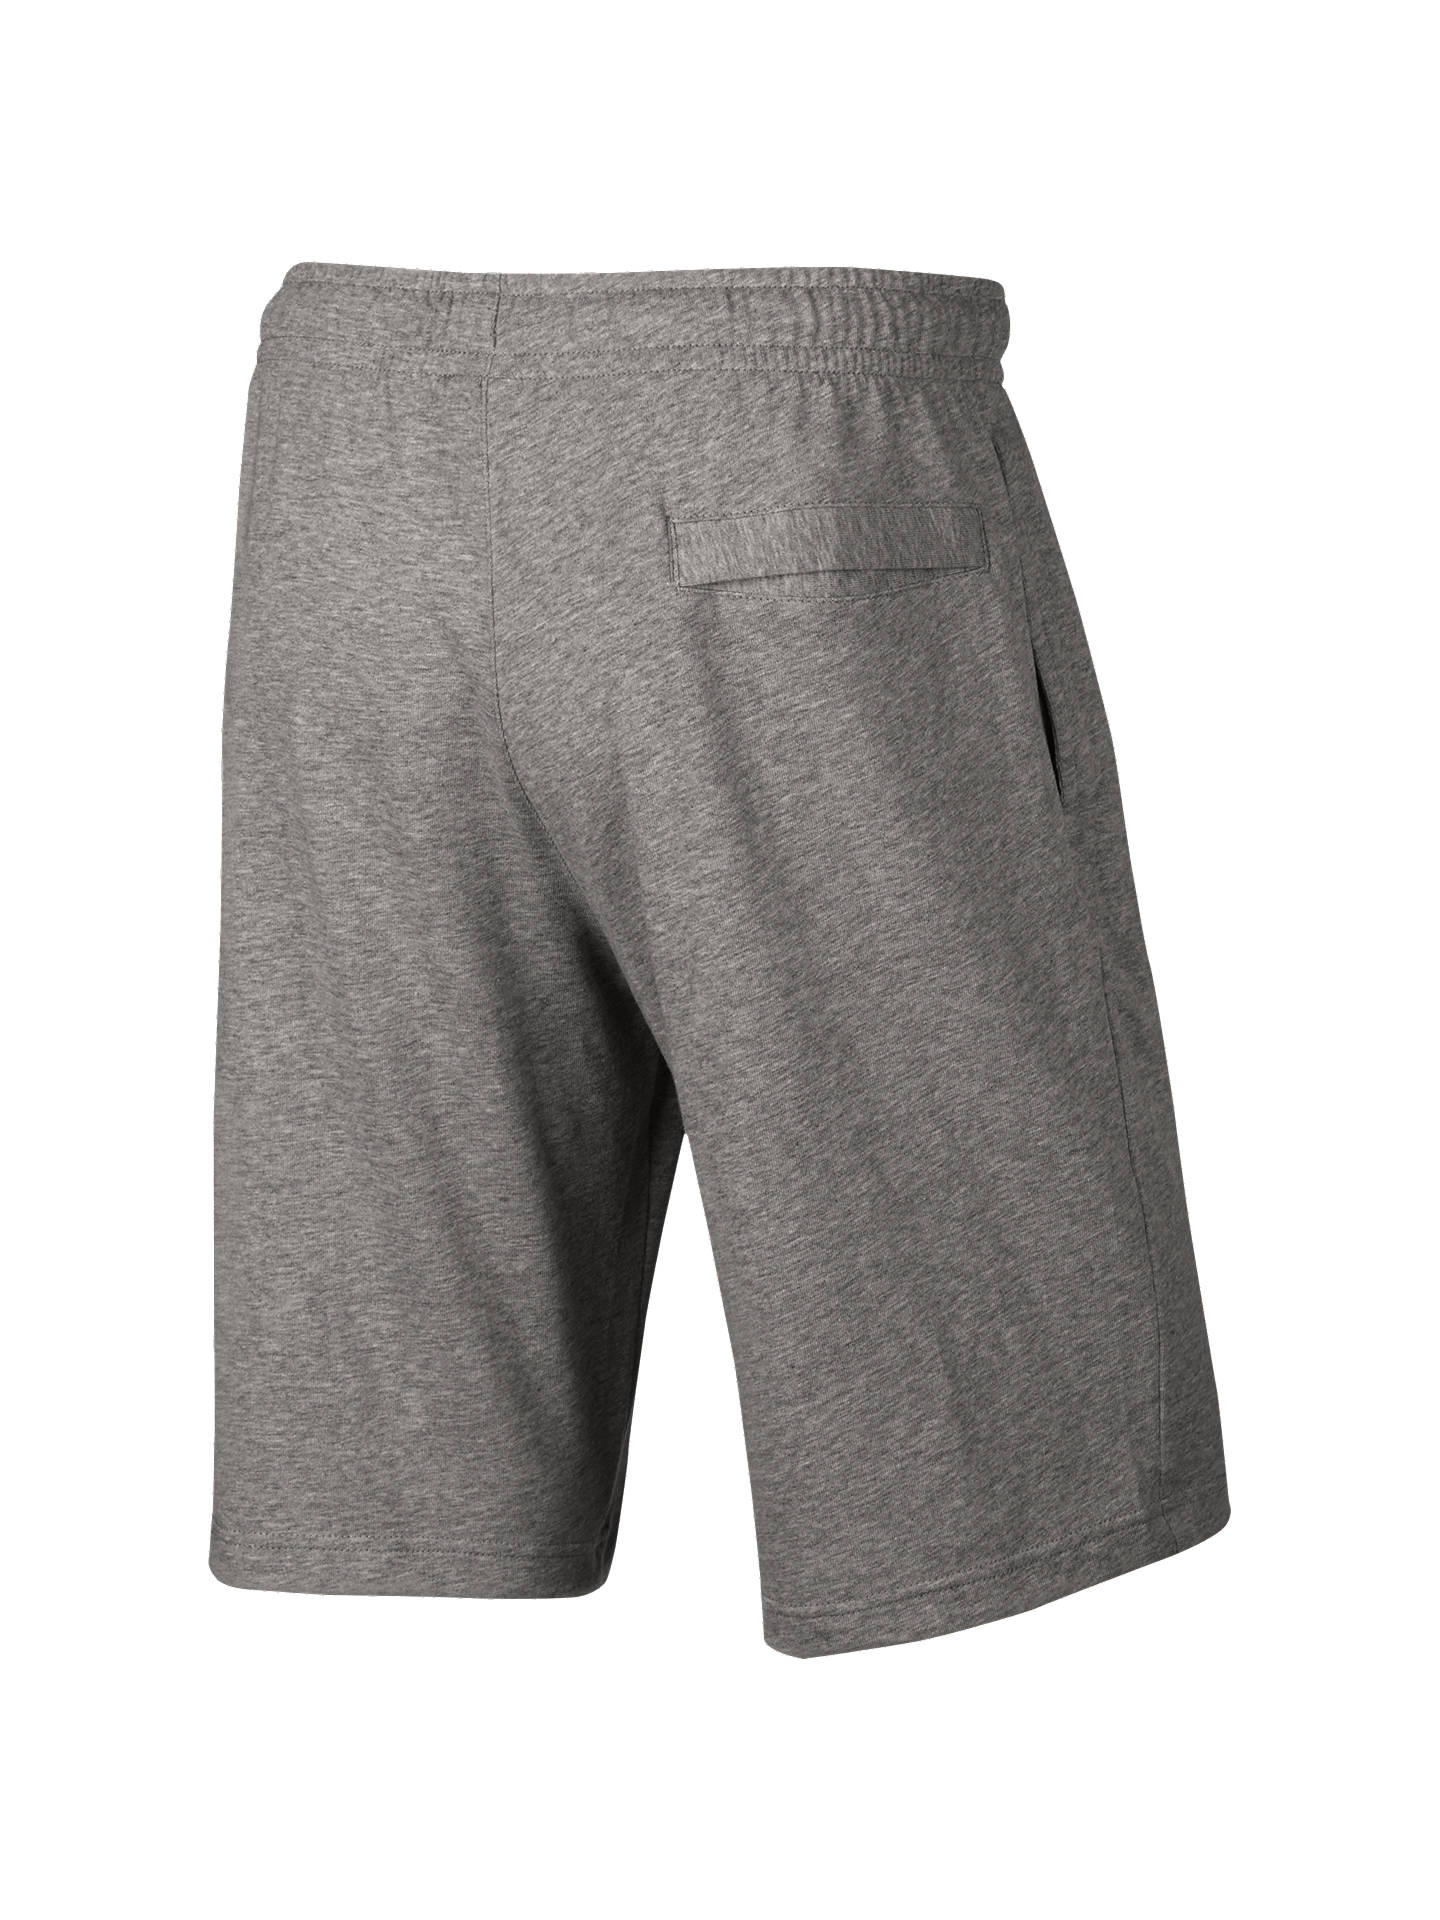 BuyNike AW77 French Terry Training Shorts, Dark Grey/Heather, S Online at johnlewis.com